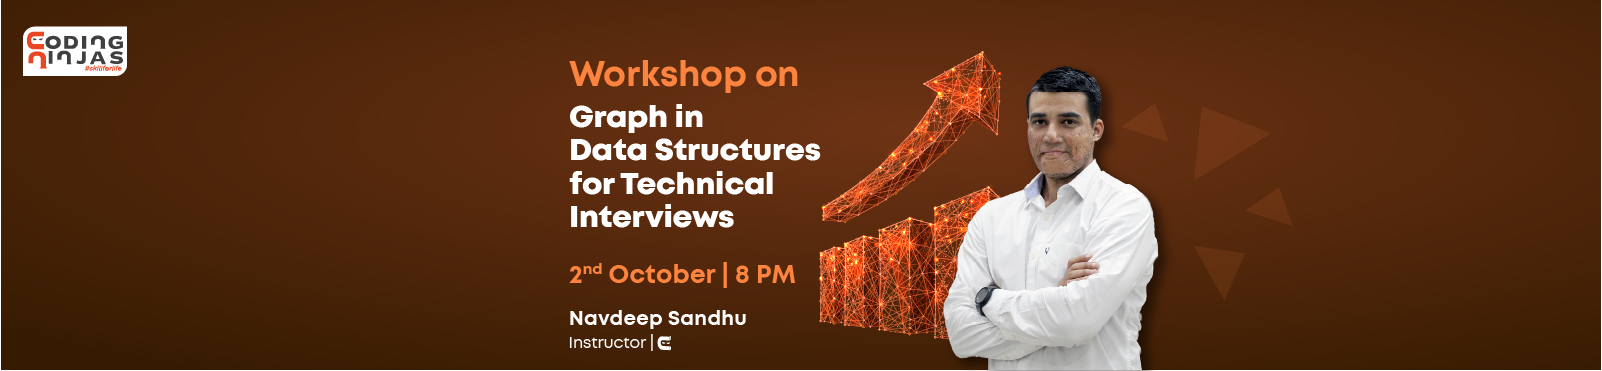 Workshop on Graph in Data Structures for Technical Interviews